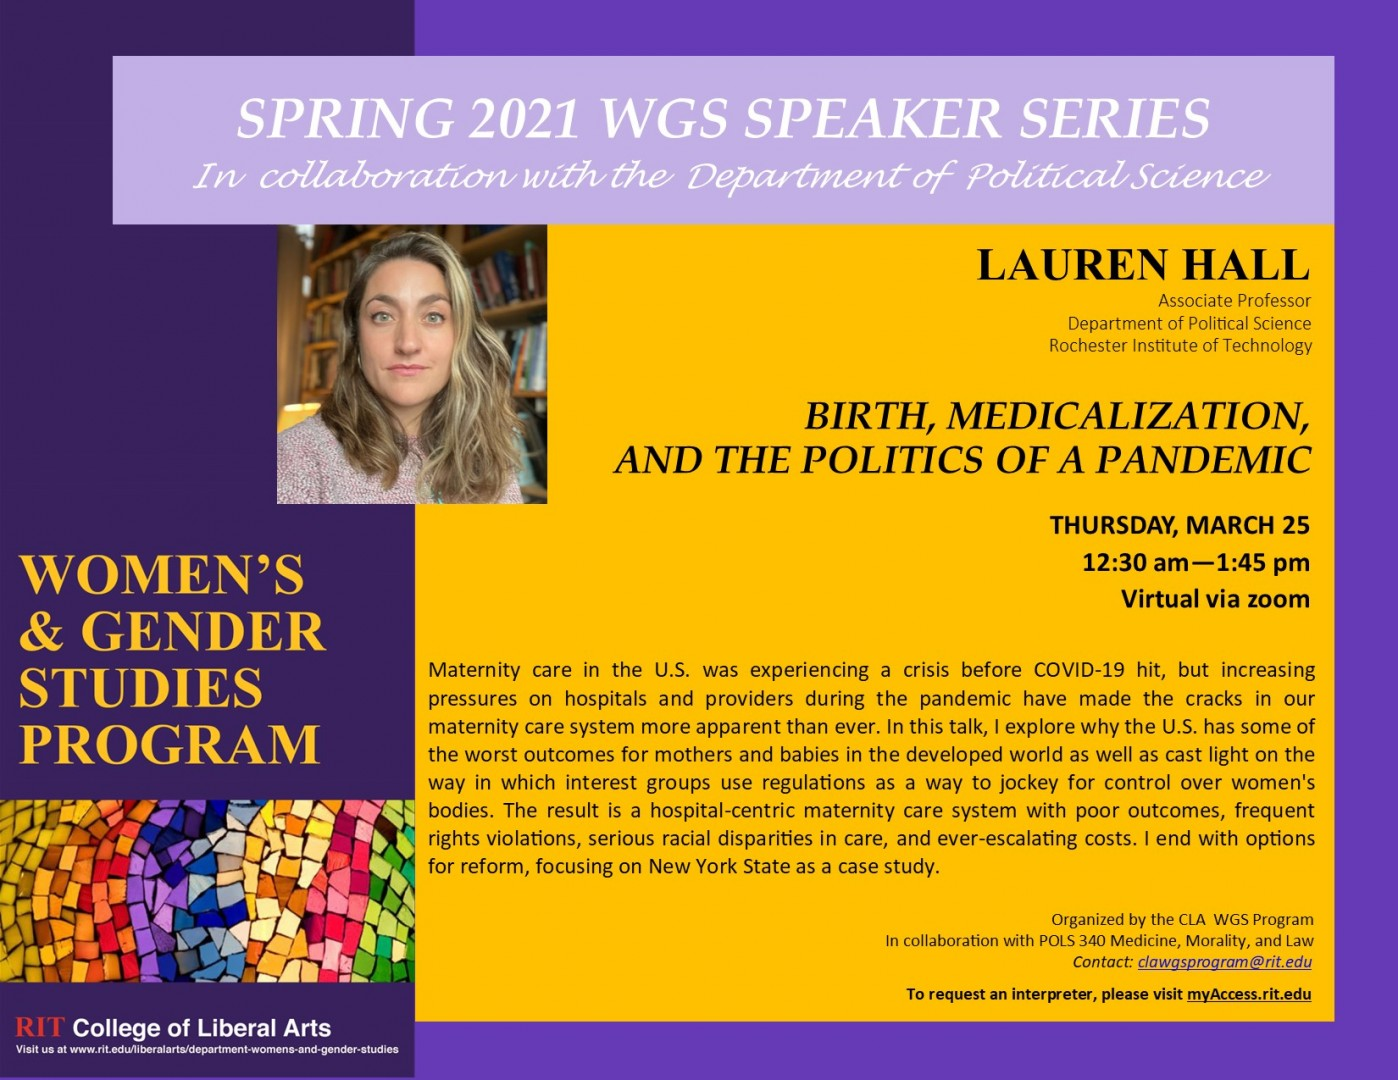 Birth, Medicalization, and politics of a pandemic